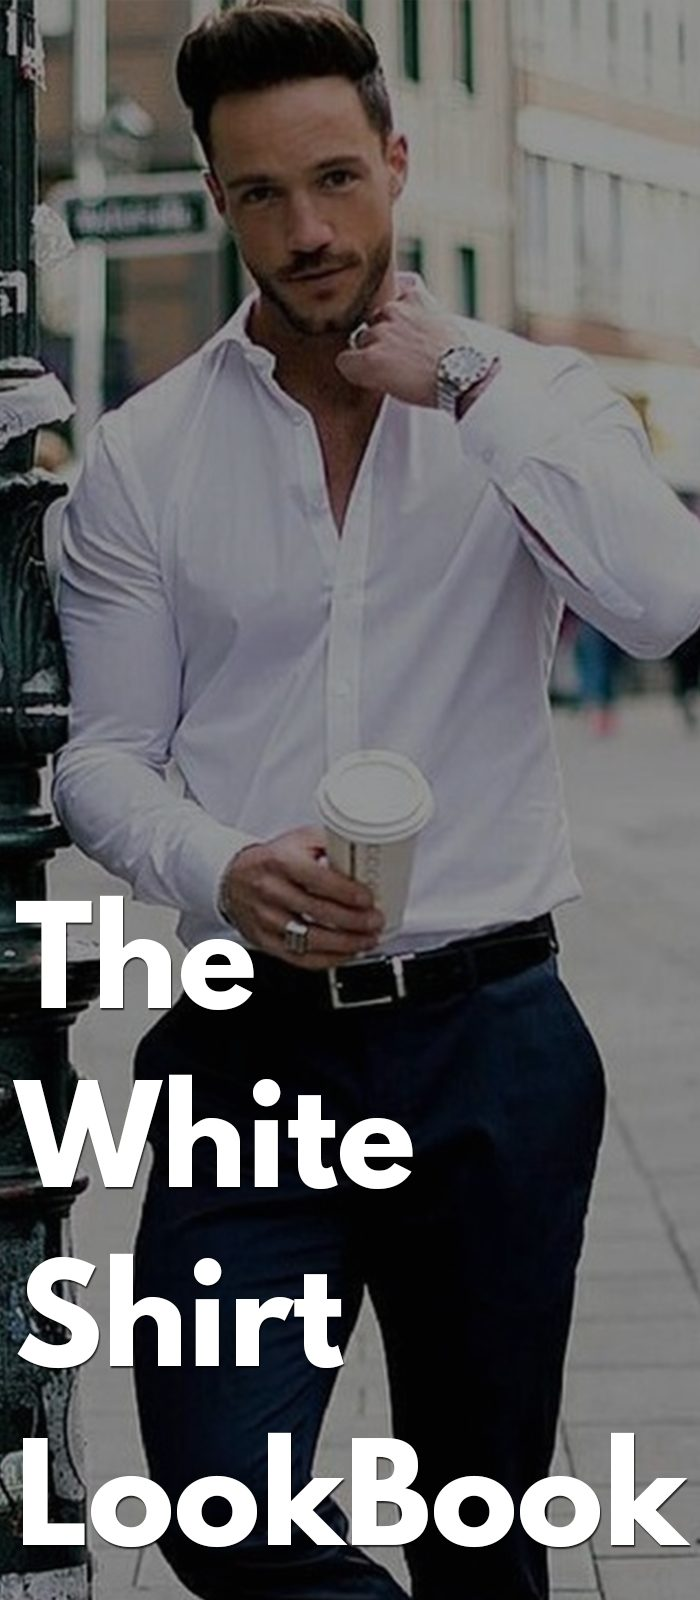 The White Shirt LookBook